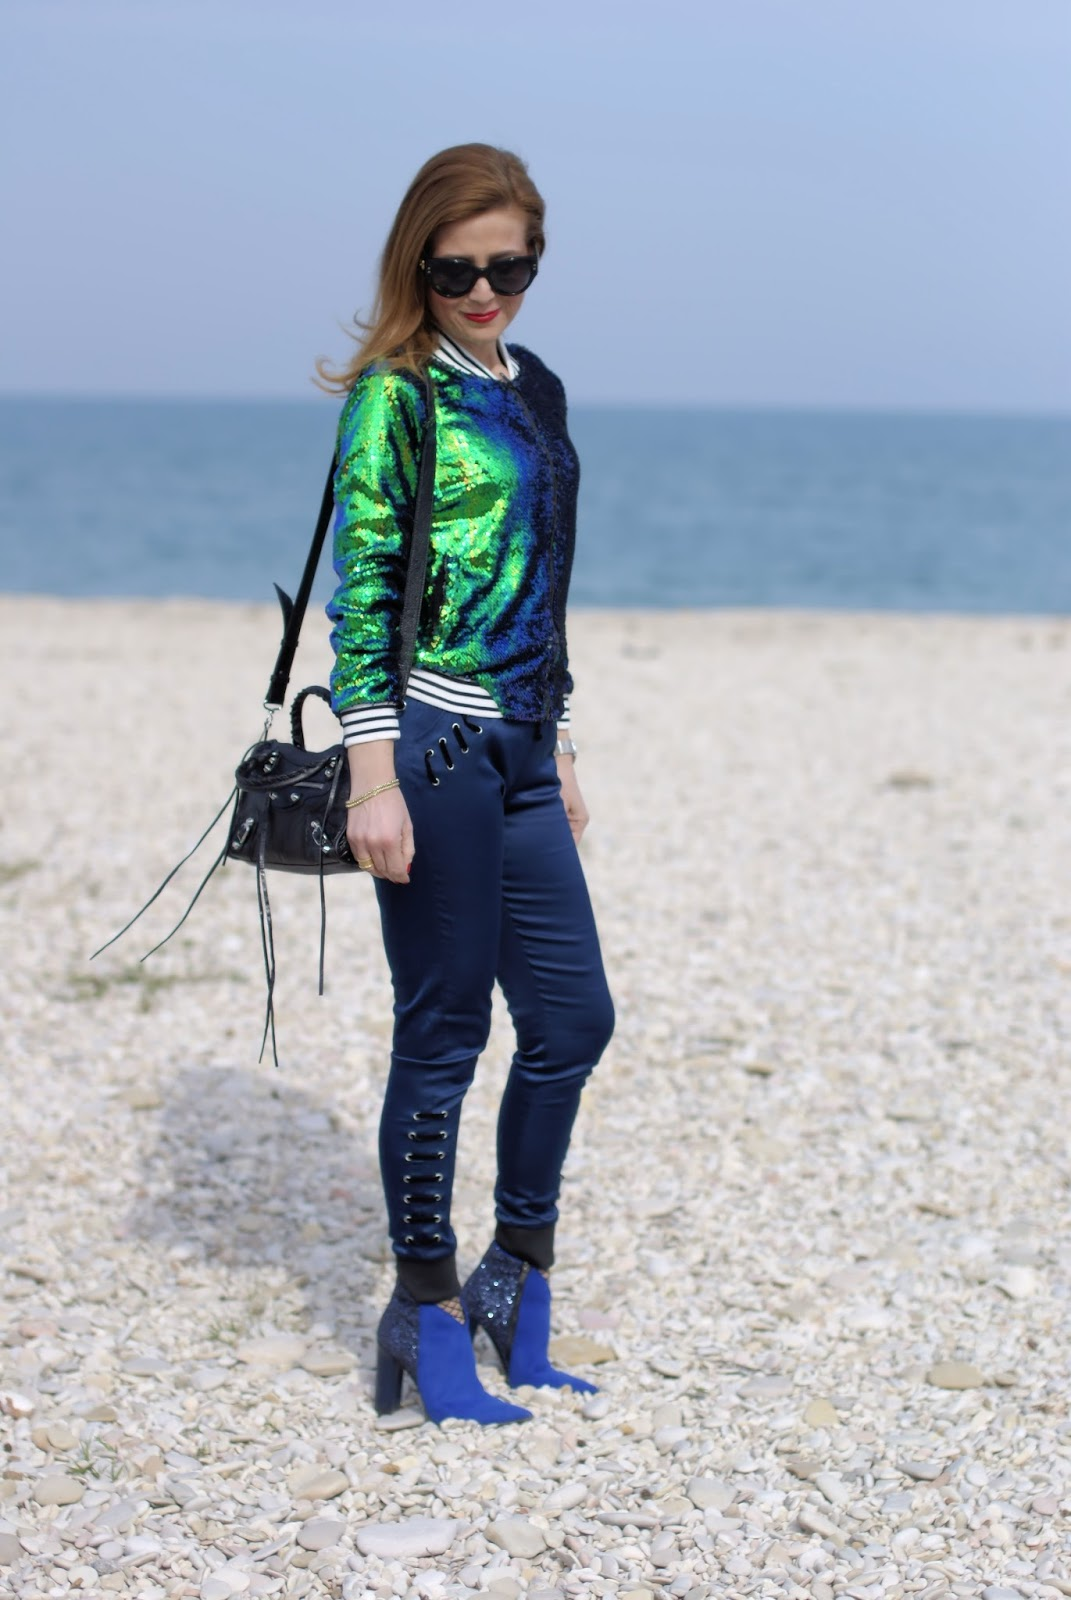 Sequins bomber jacket from Zaful and Gucci sunglasses on Fashion and Cookies fashion blog, fashion blogger style